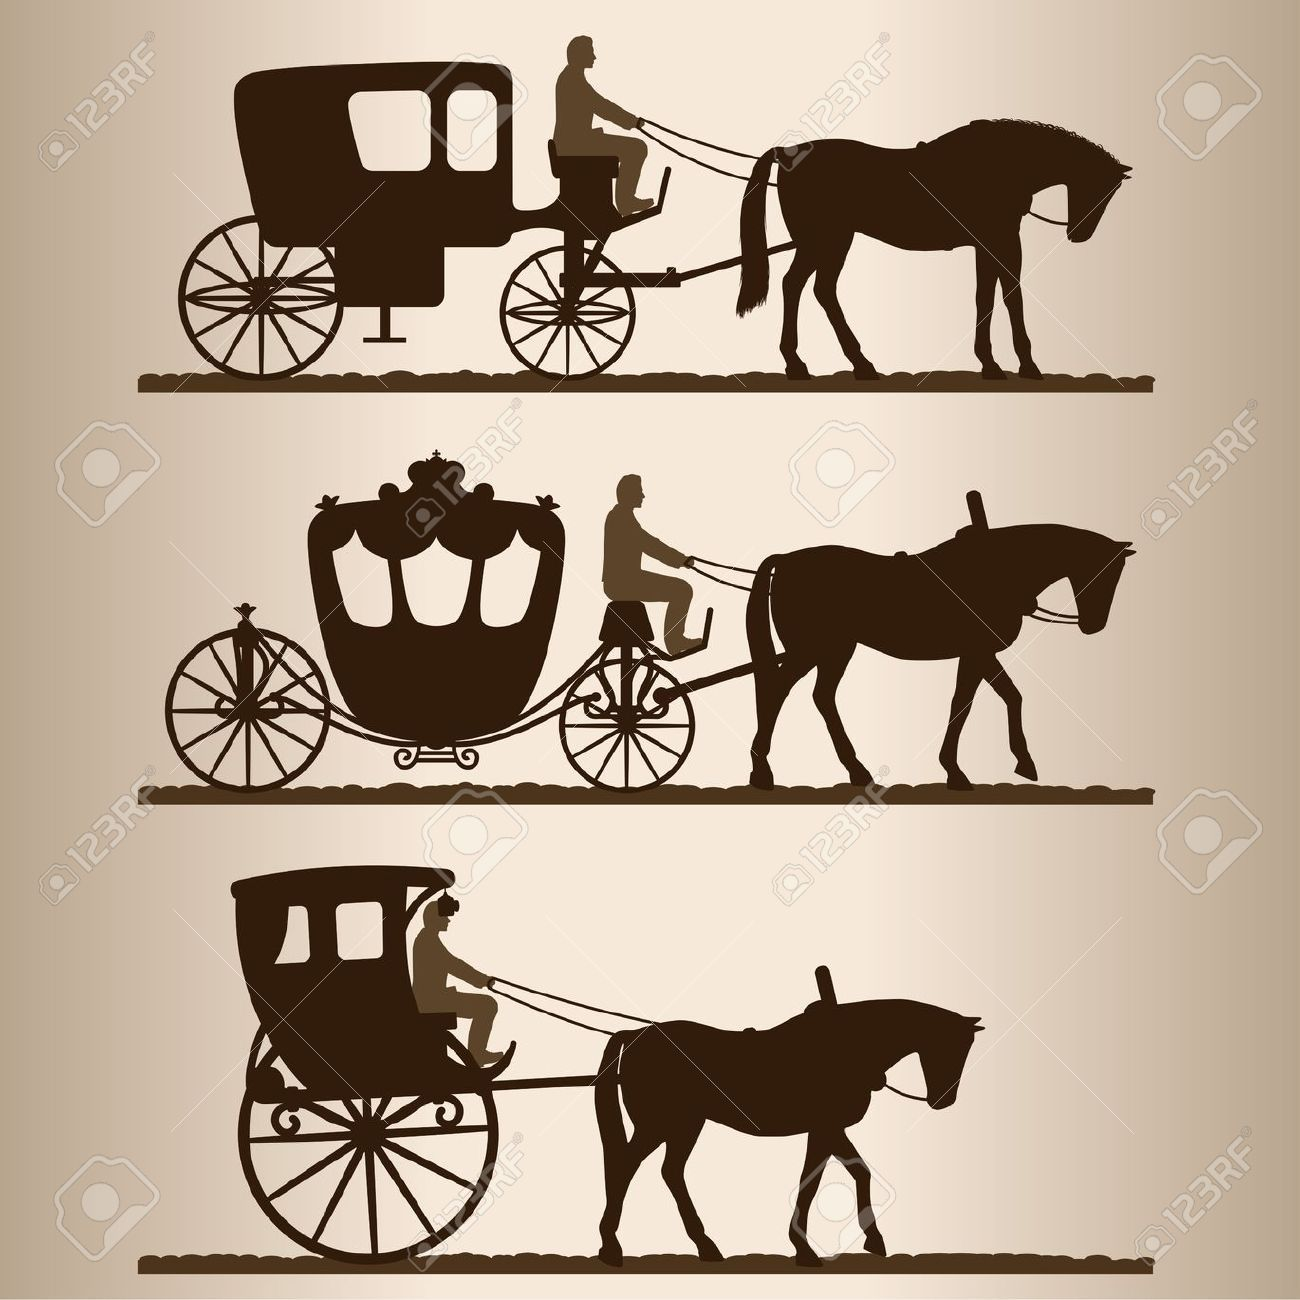 Horse Racing Track Vector Stock Images, Royalty-Free ... |Metal Horse And Buggy Silhouette